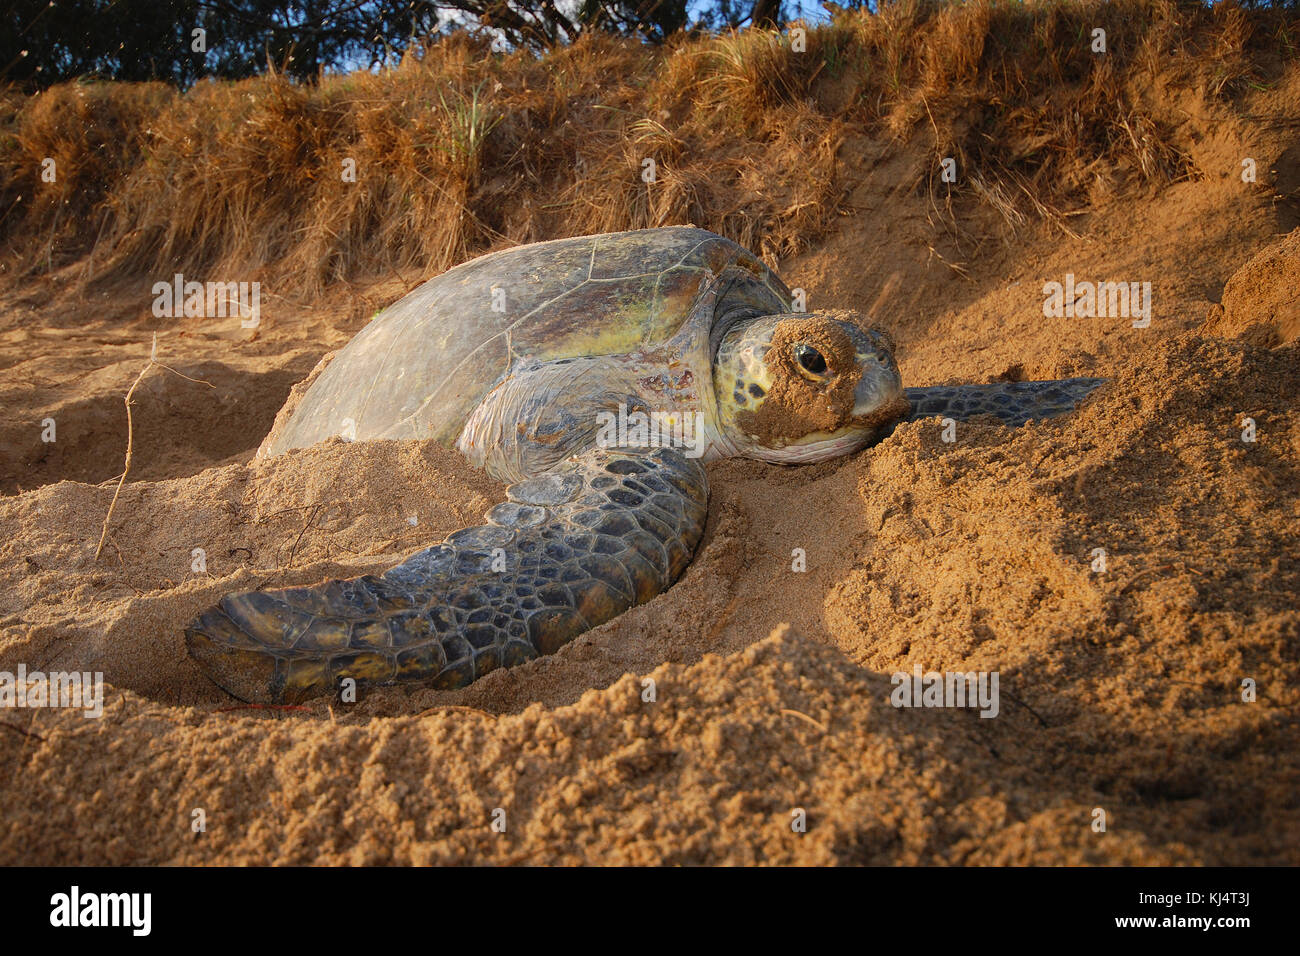 Green Turtle (Chelonia mydas)  Moore Park Beach, Queensland, Australia. Female turtles come ashore during the nesting - Stock Image